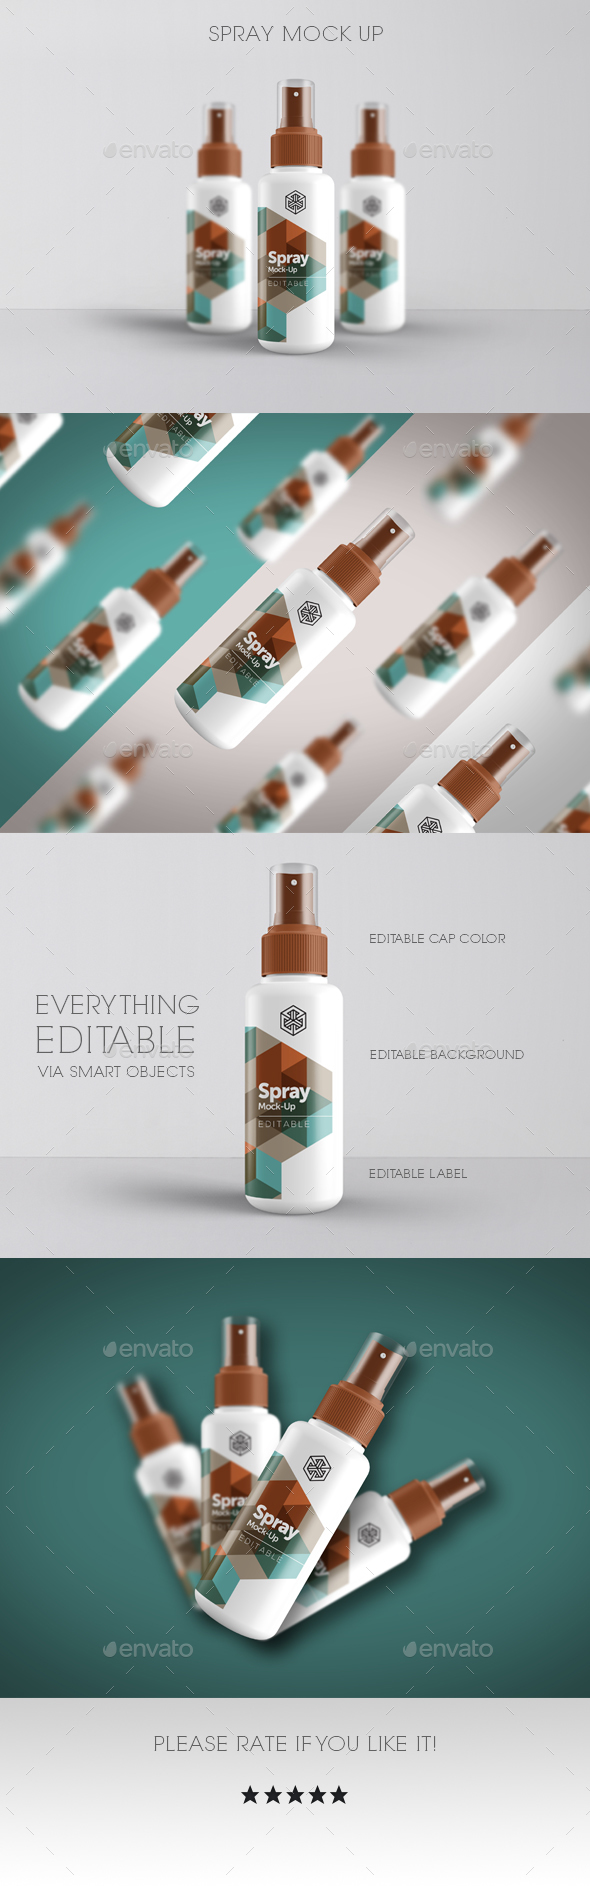 Spray Mock Up - Beauty Packaging